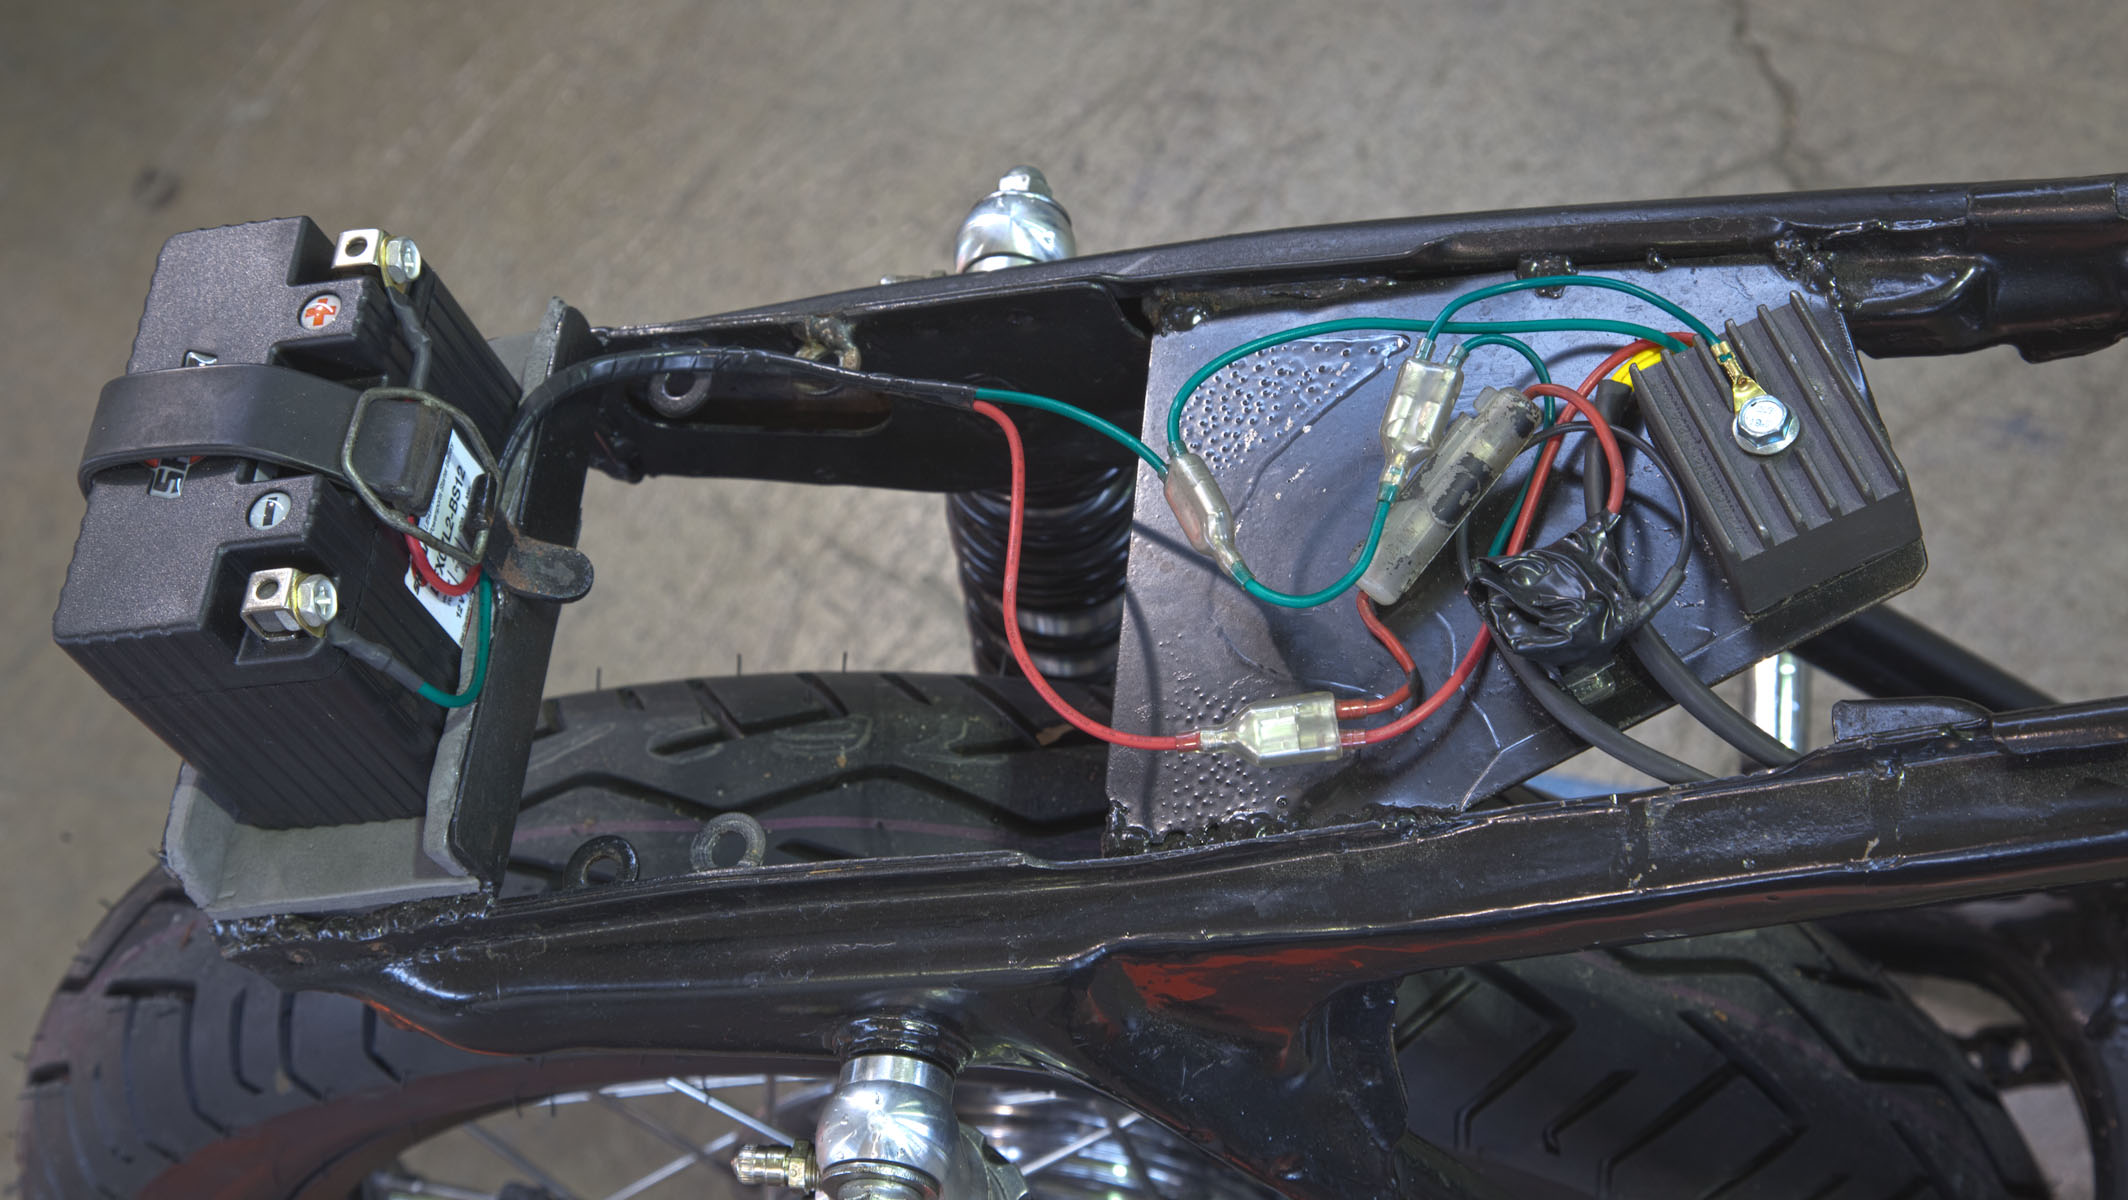 Cb350 Wiring Harness 20 Diagram Images Diagrams Honda Simple Google Search Useful 012412 2 Md Project Cafe Racer Part Iv Motorcycledaily Com At